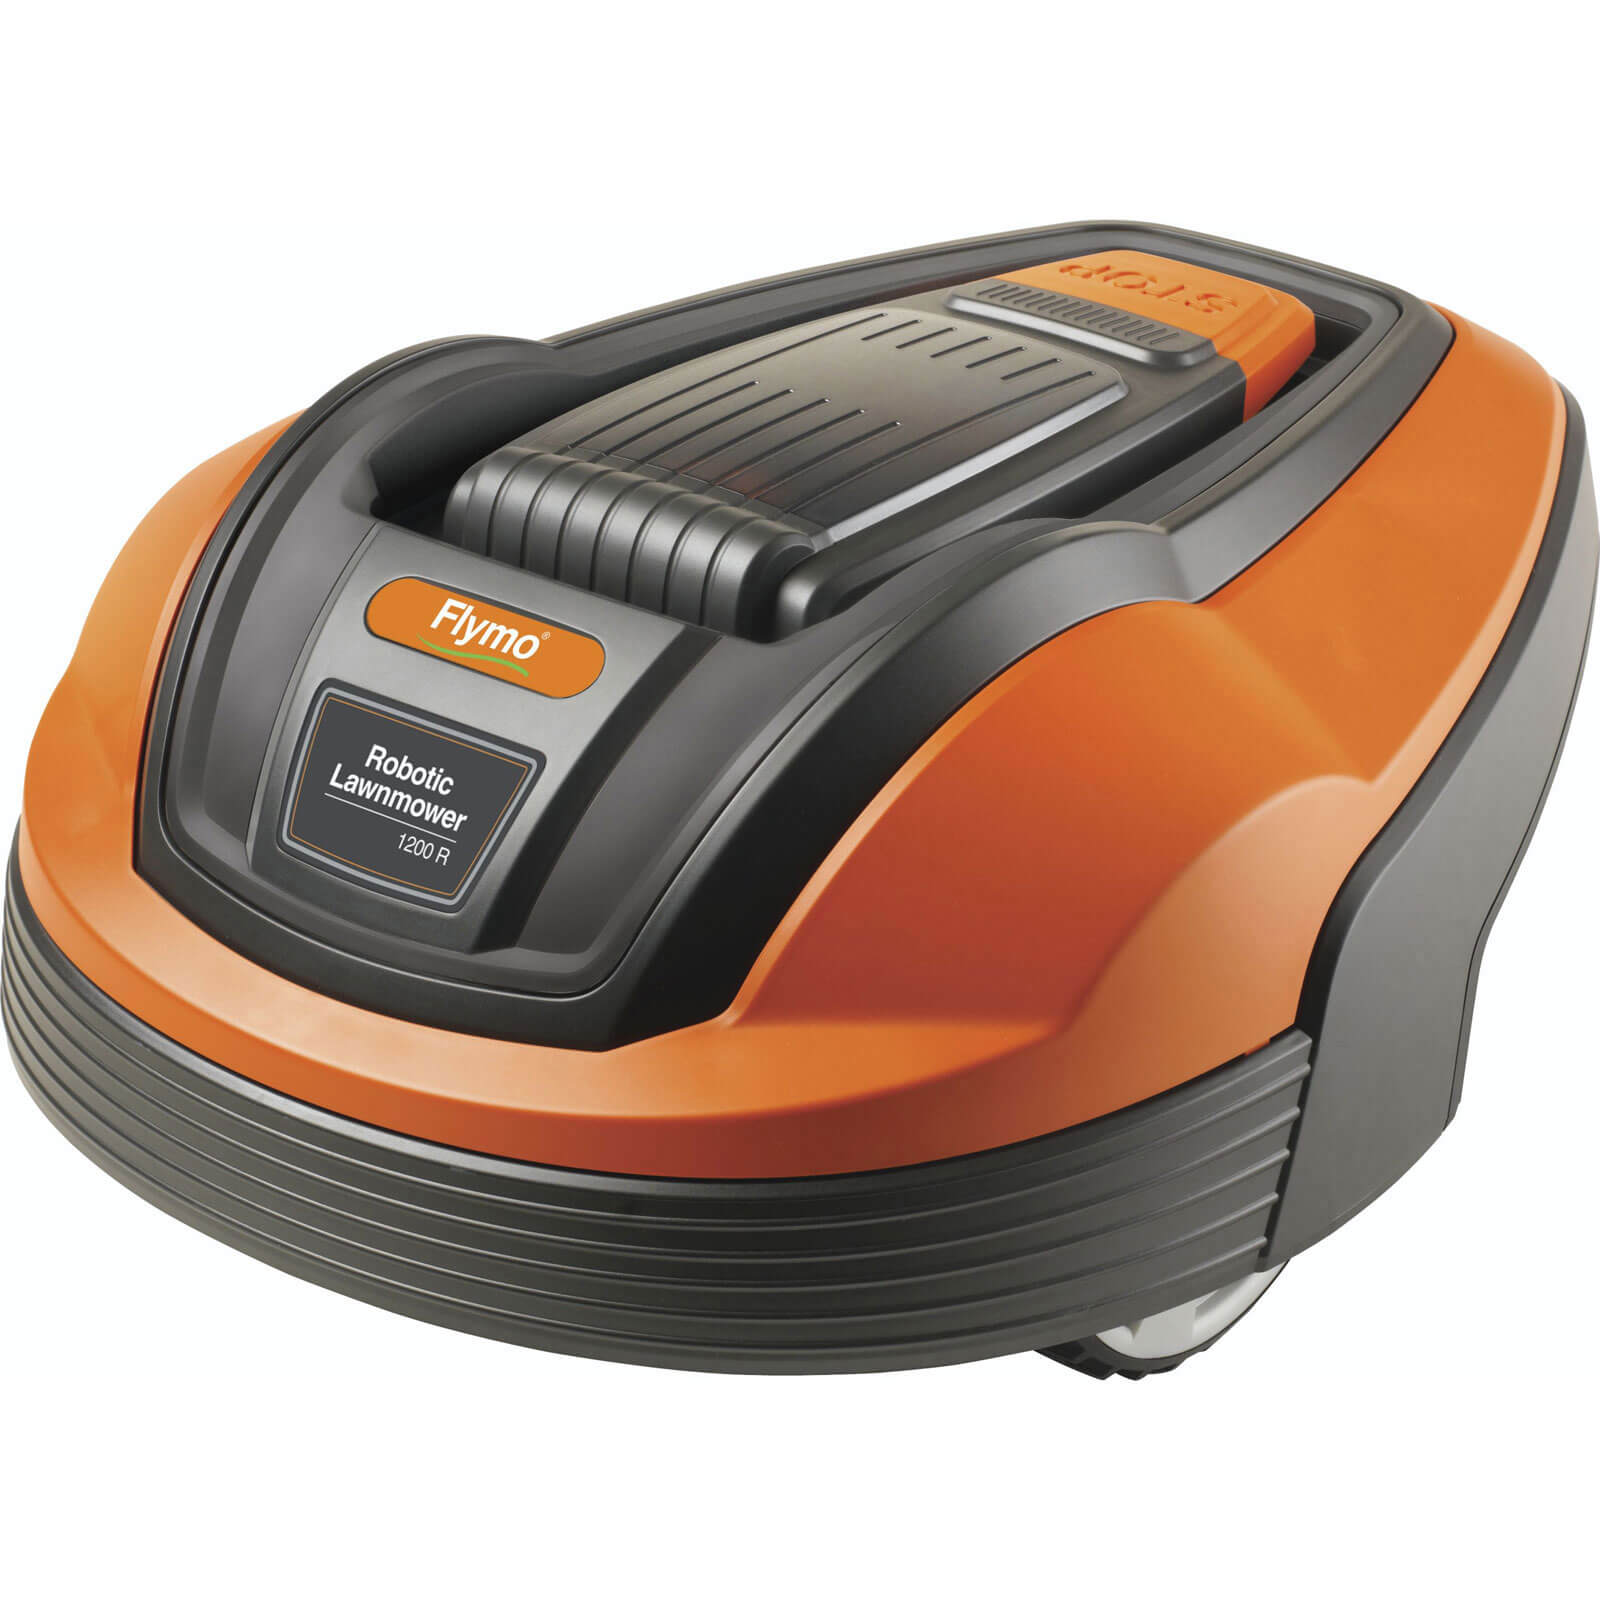 Flymo RL1200R 18v Cordless Robotic Mower with Integral Lithium Ion Battery